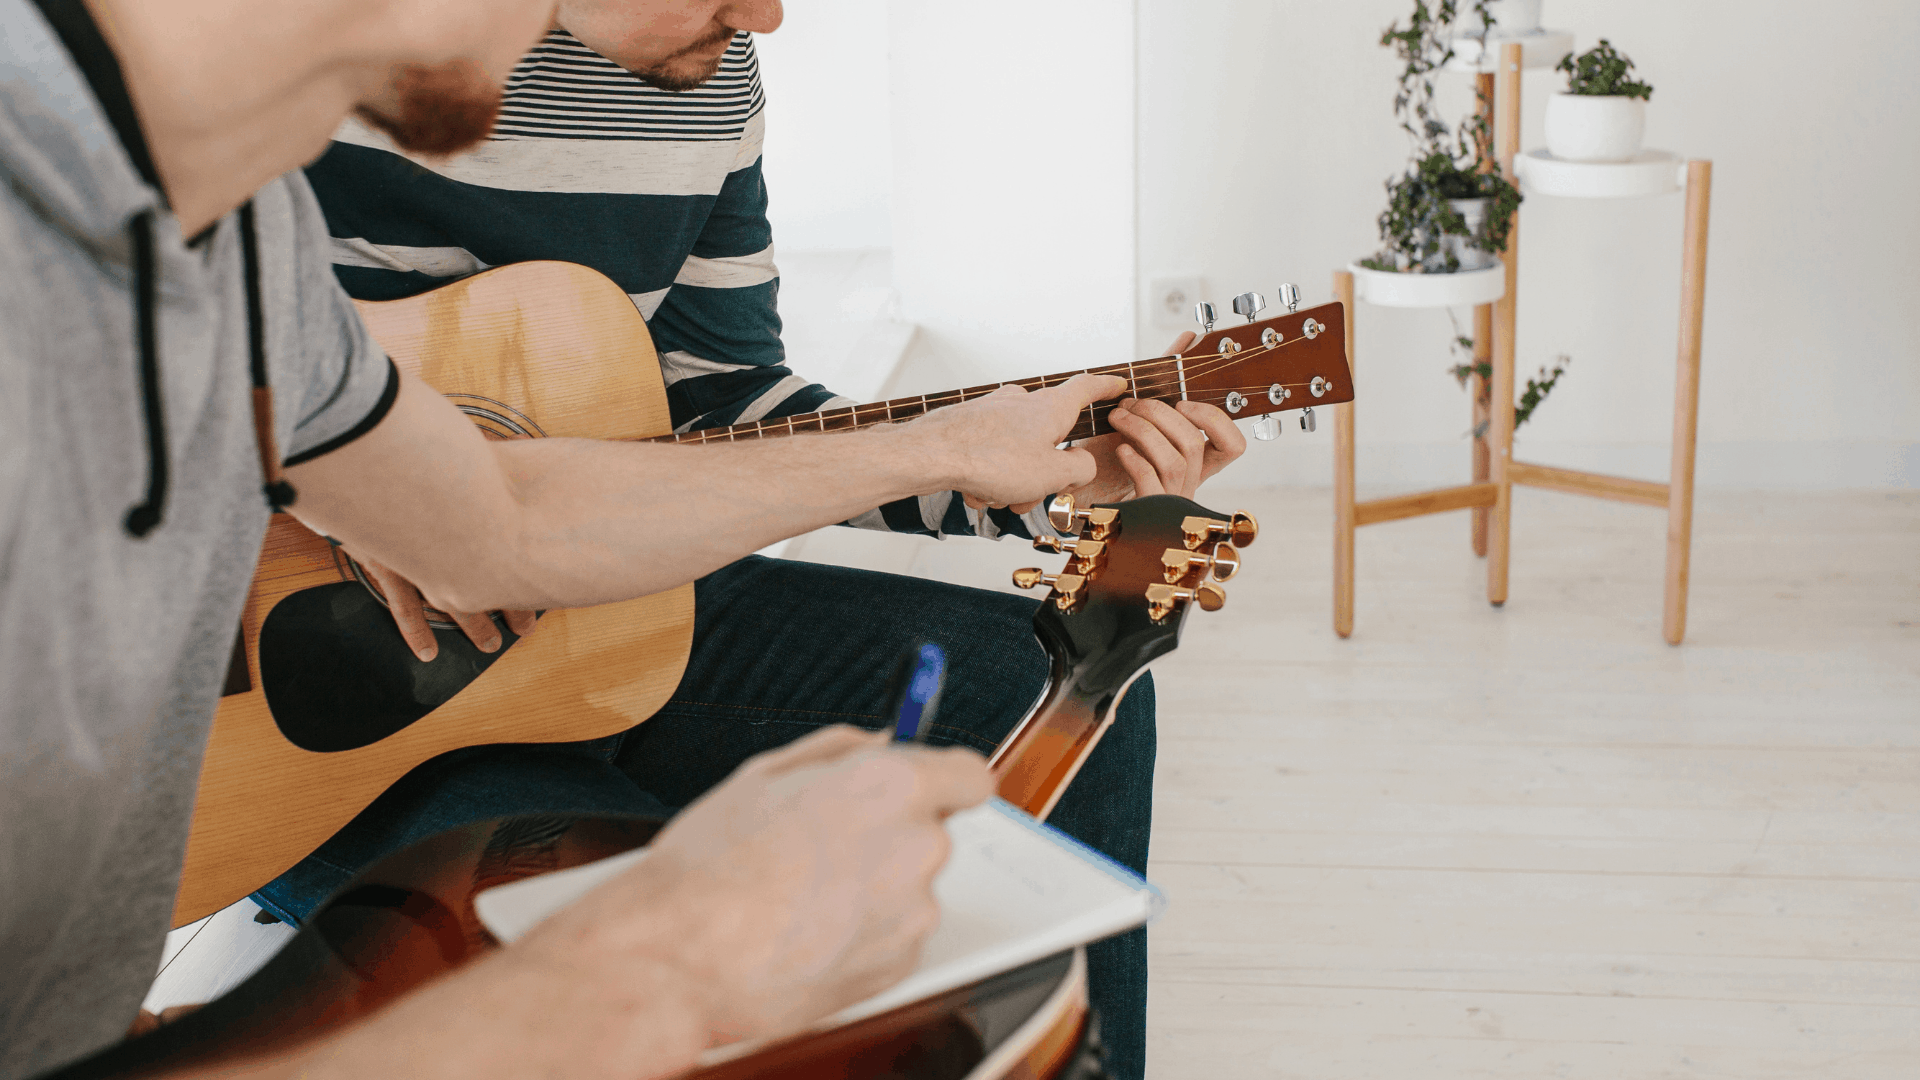 Best self-teaching guitars & useful guitar learning tools to practice your play